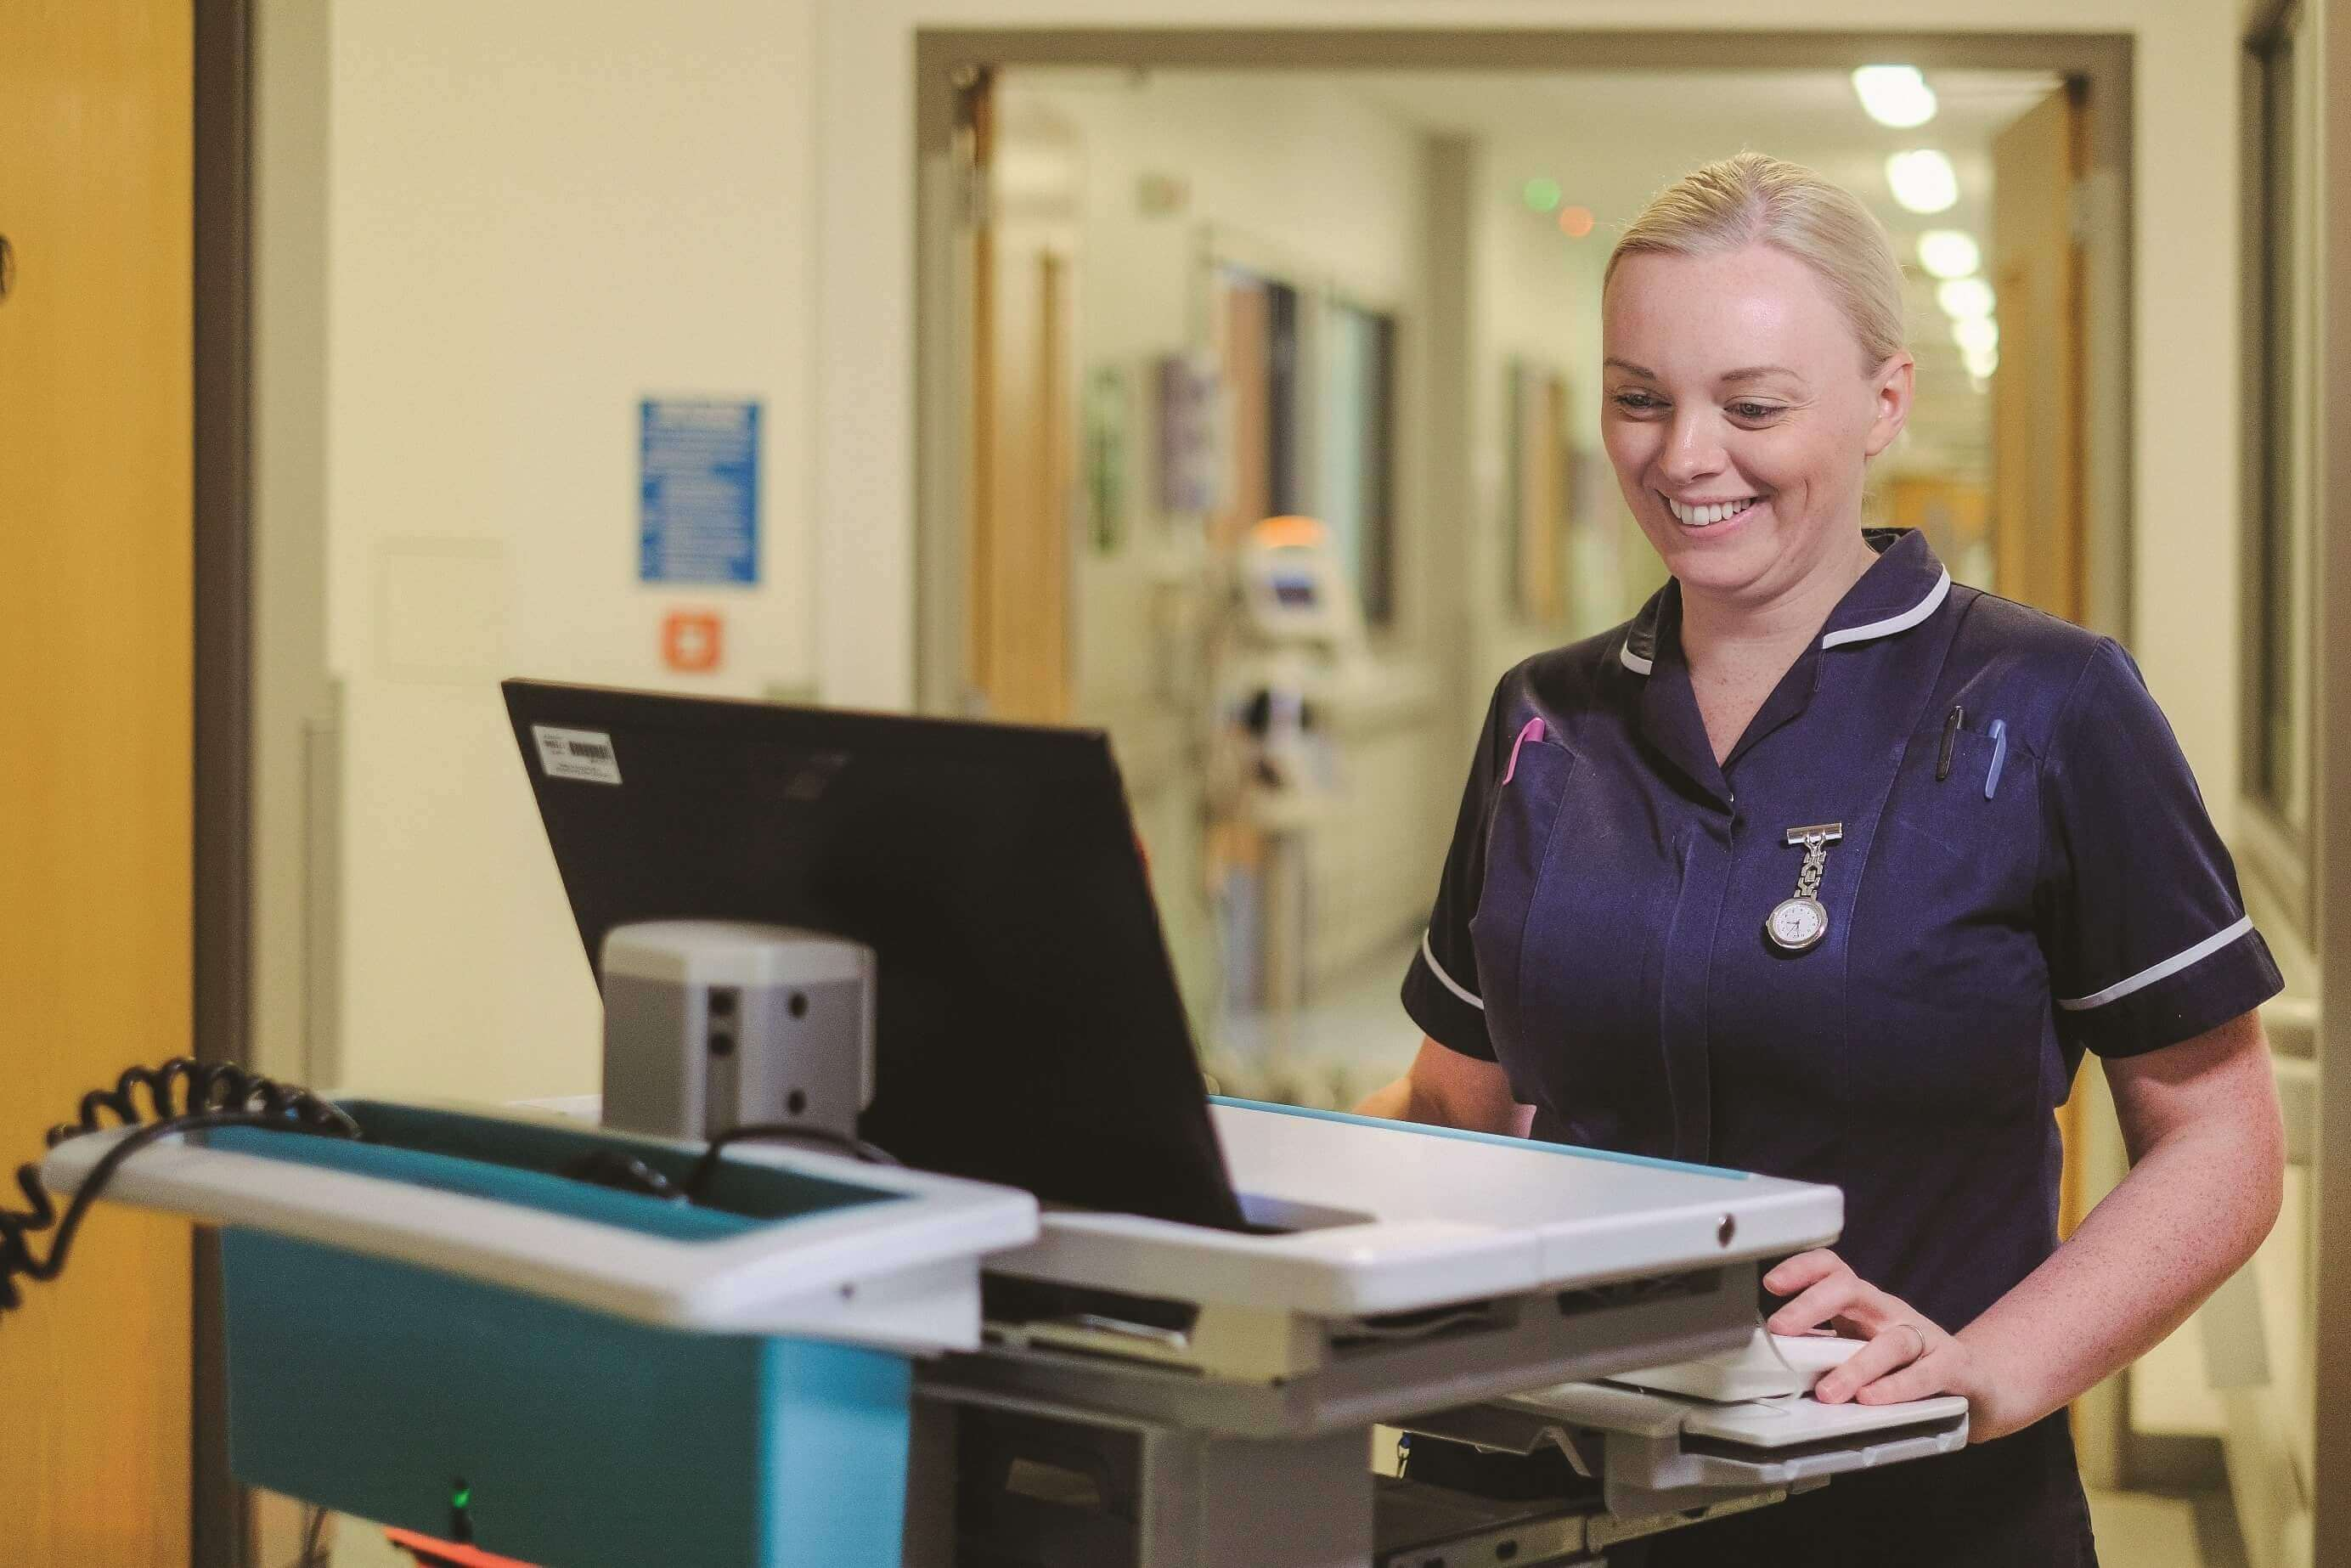 Newcastle Upon Tyne Hospitals NHS Foundation Trust implements e-Rostering to boost patient care and budget efficiency